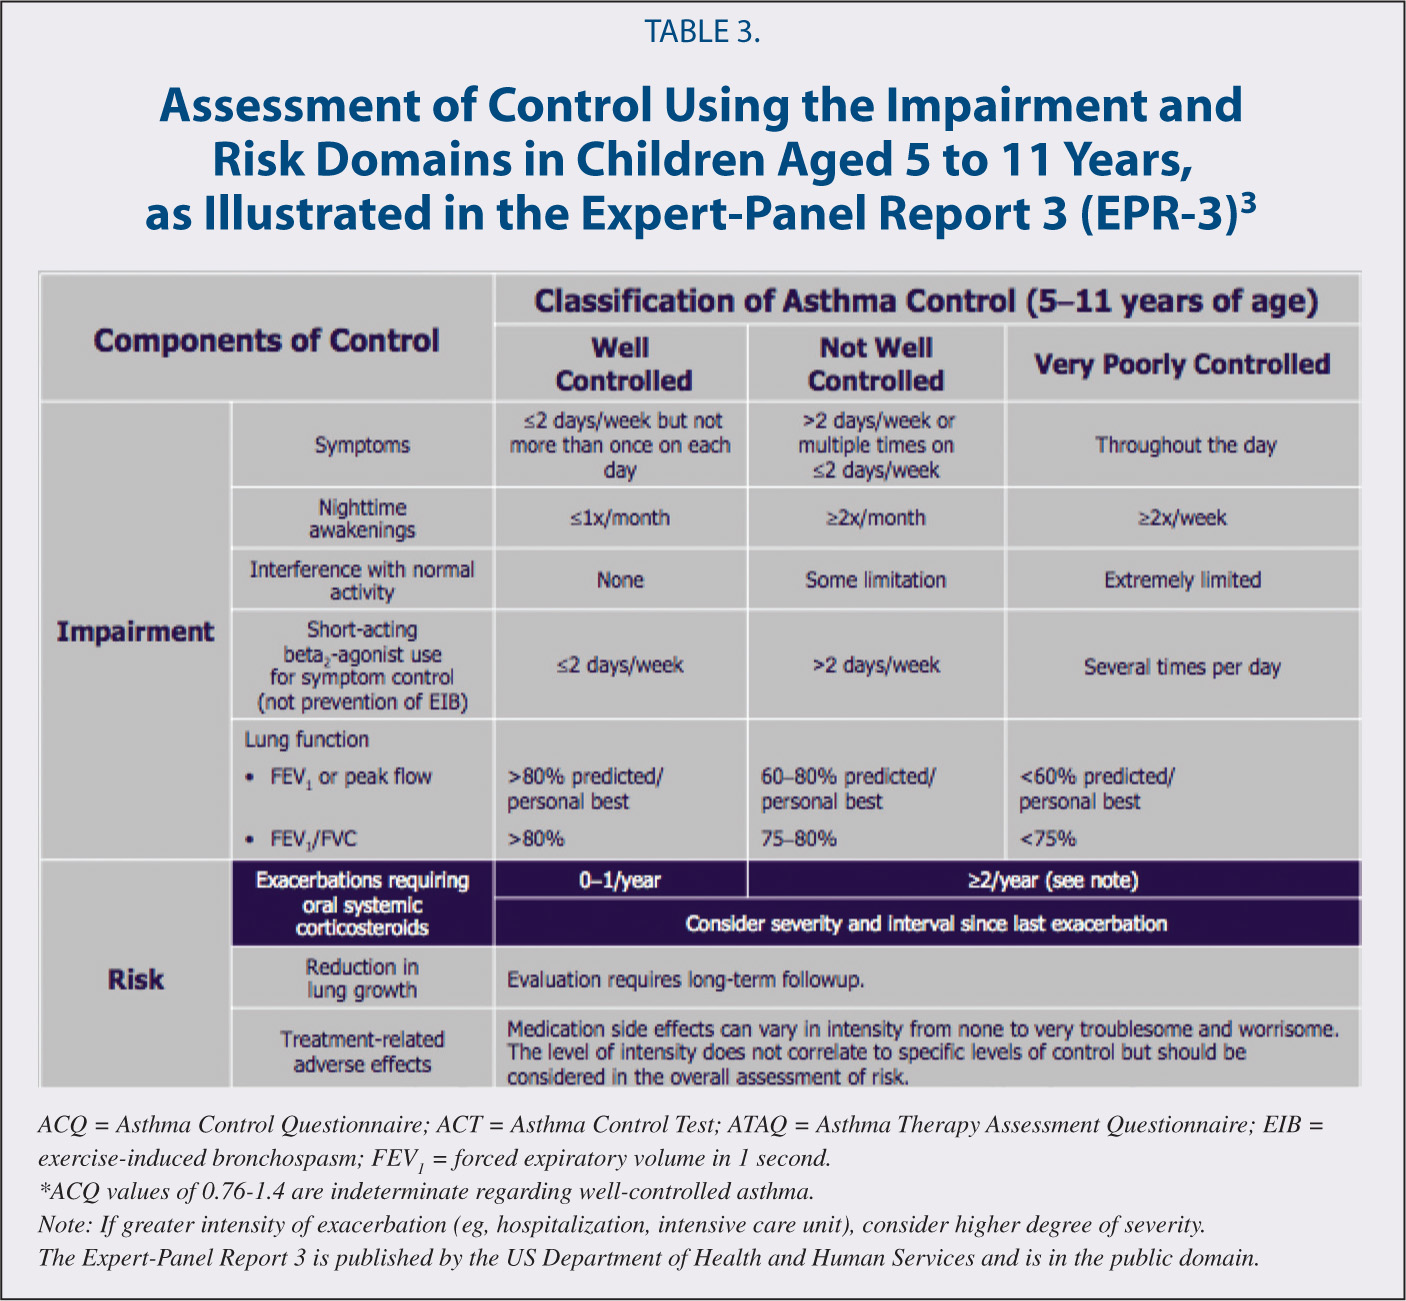 Assessment of Control Using the Impairment and Risk Domains in Children Aged 5 to 11 Years, as Illustrated in the Expert-Panel Report 3 (EPR-3)3